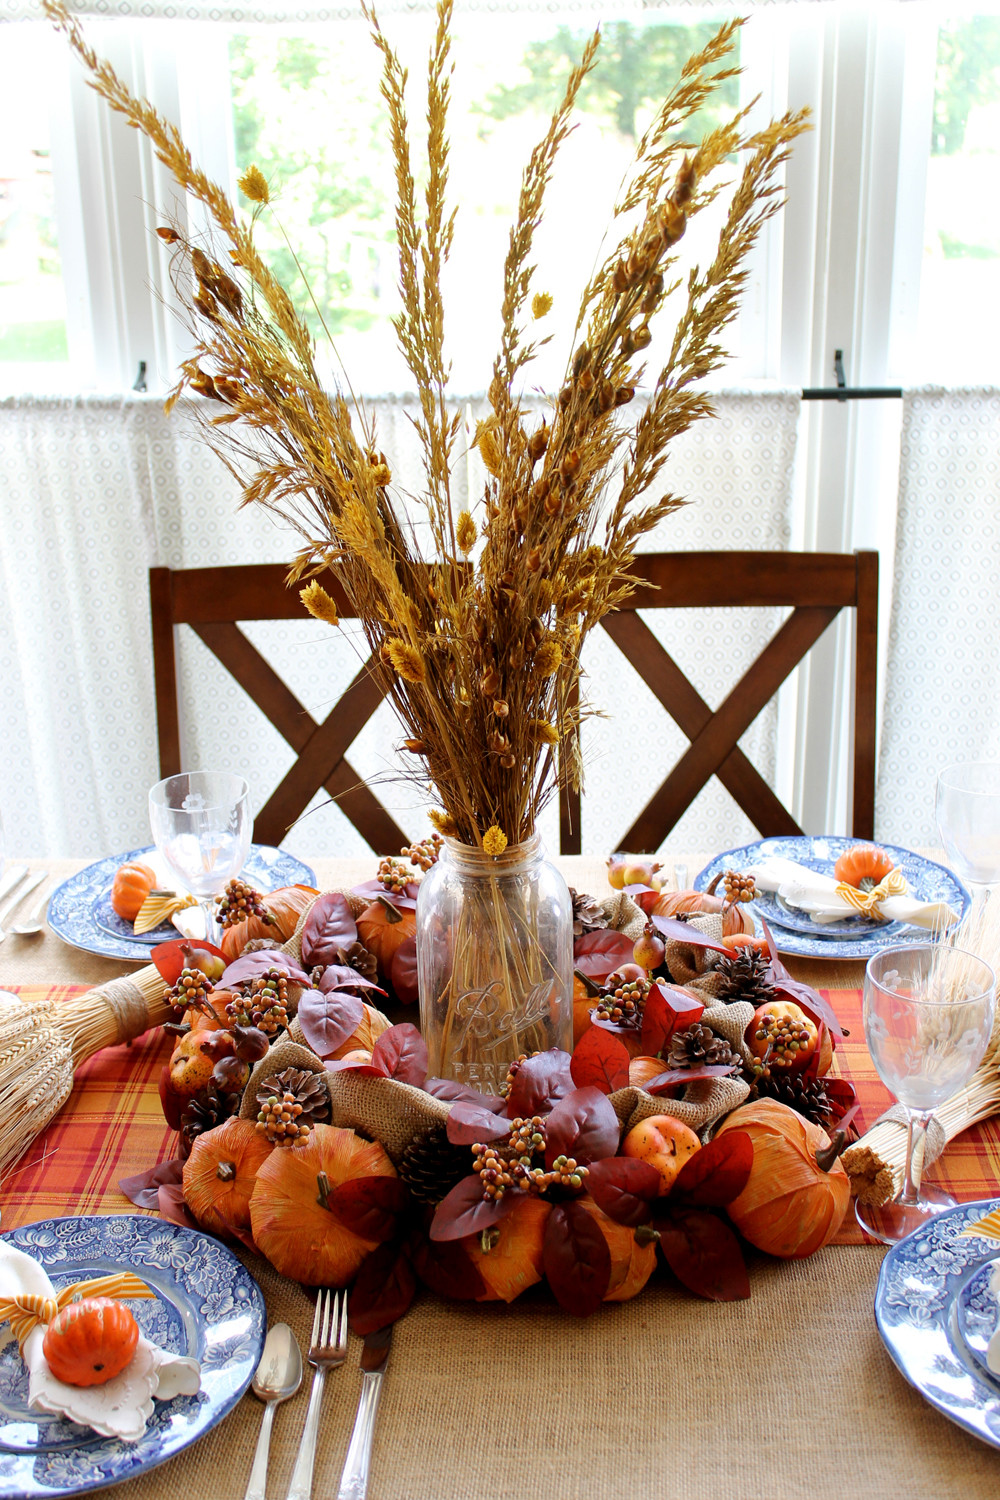 DIY Thanksgiving Decorations  DIY Thanksgiving Decorations for Your Table The Country